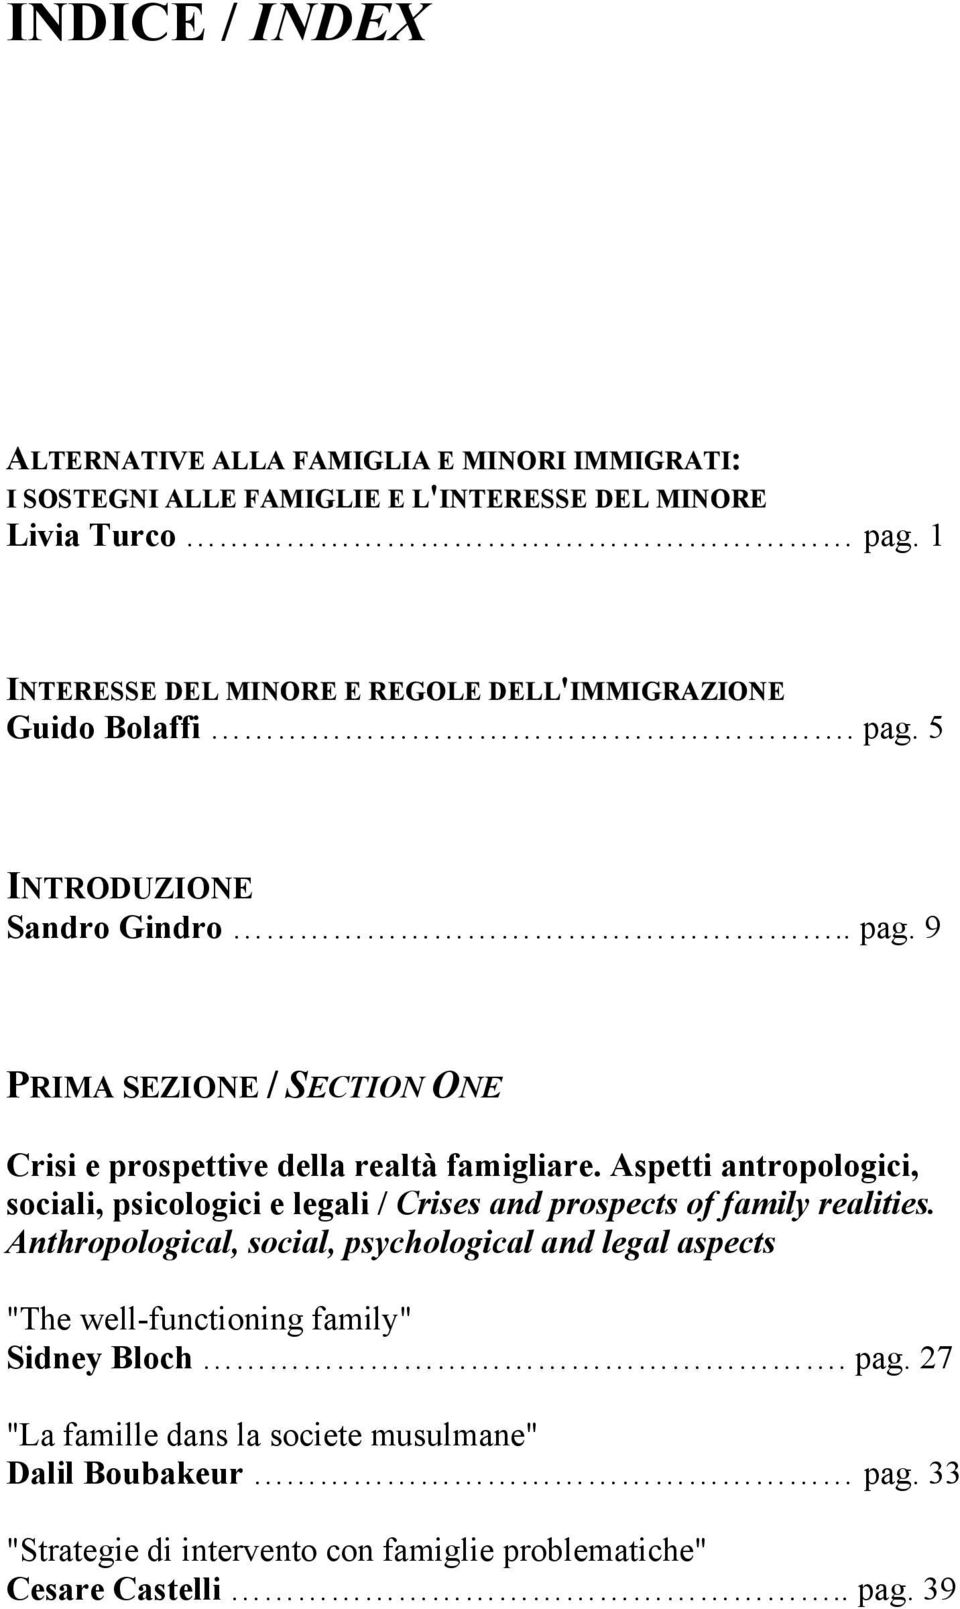 Aspetti antropologici, sociali, psicologici e legali / Crises and prospects of family realities.